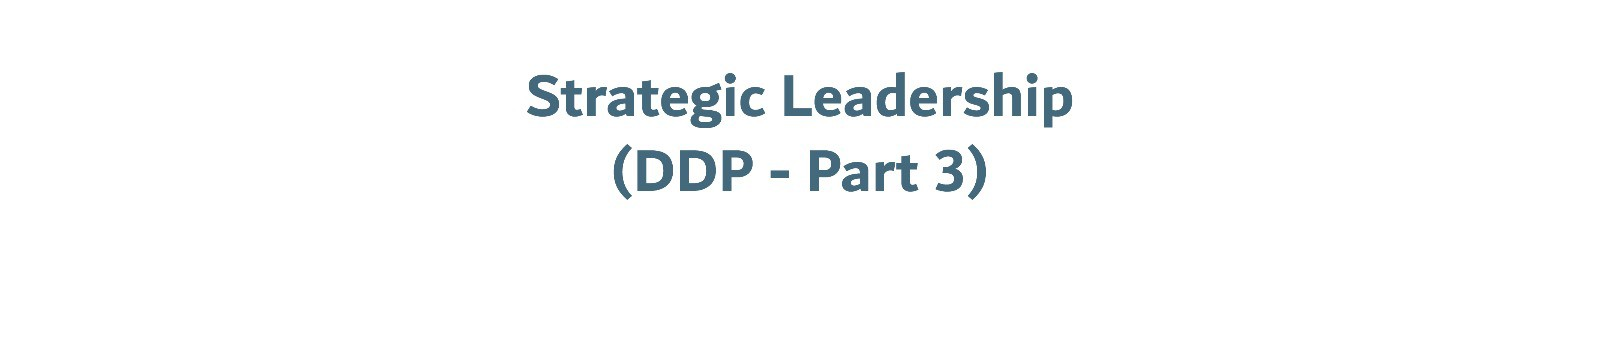 Strategic Leadership (Part 3 DDP)